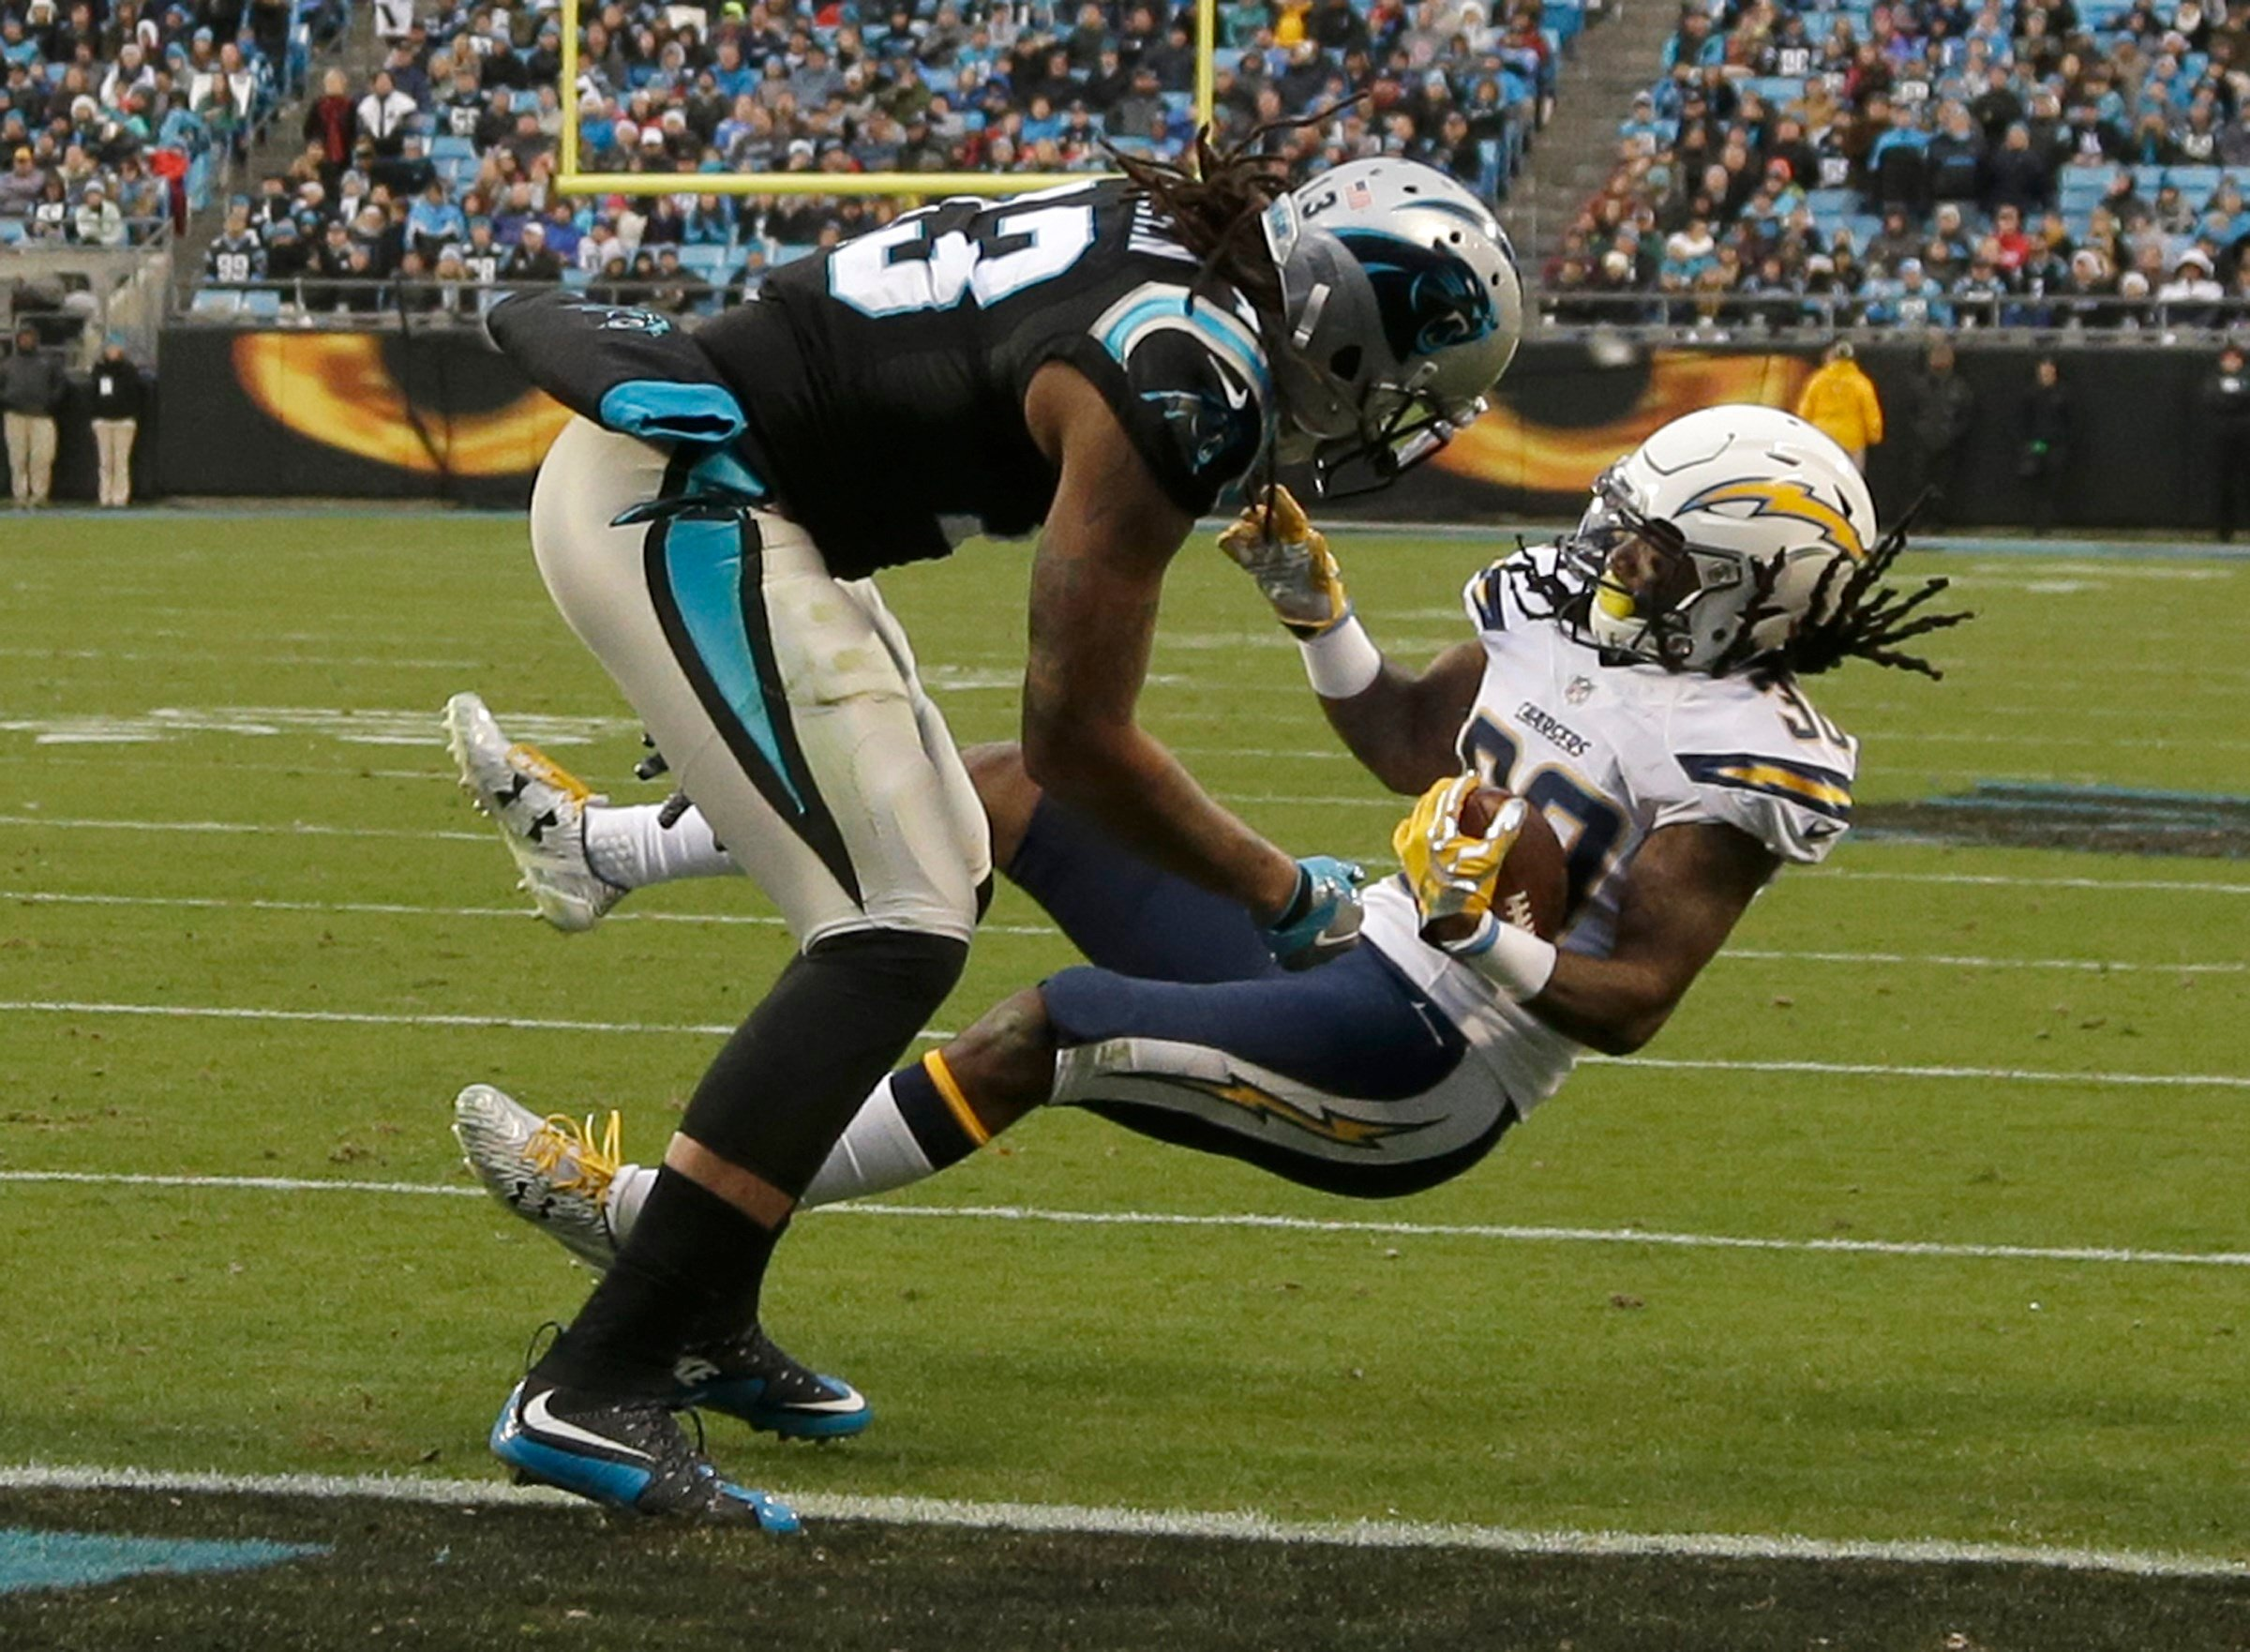 San Diego Chargers' Trovon Reed, right, intercepts a pass intended for Carolina Panthers' Kelvin Benjamin, left, in the second half of an NFL football game in Charlotte, N.C., Sunday, Dec. 11, 2016. (AP Photo/Bob Leverone)